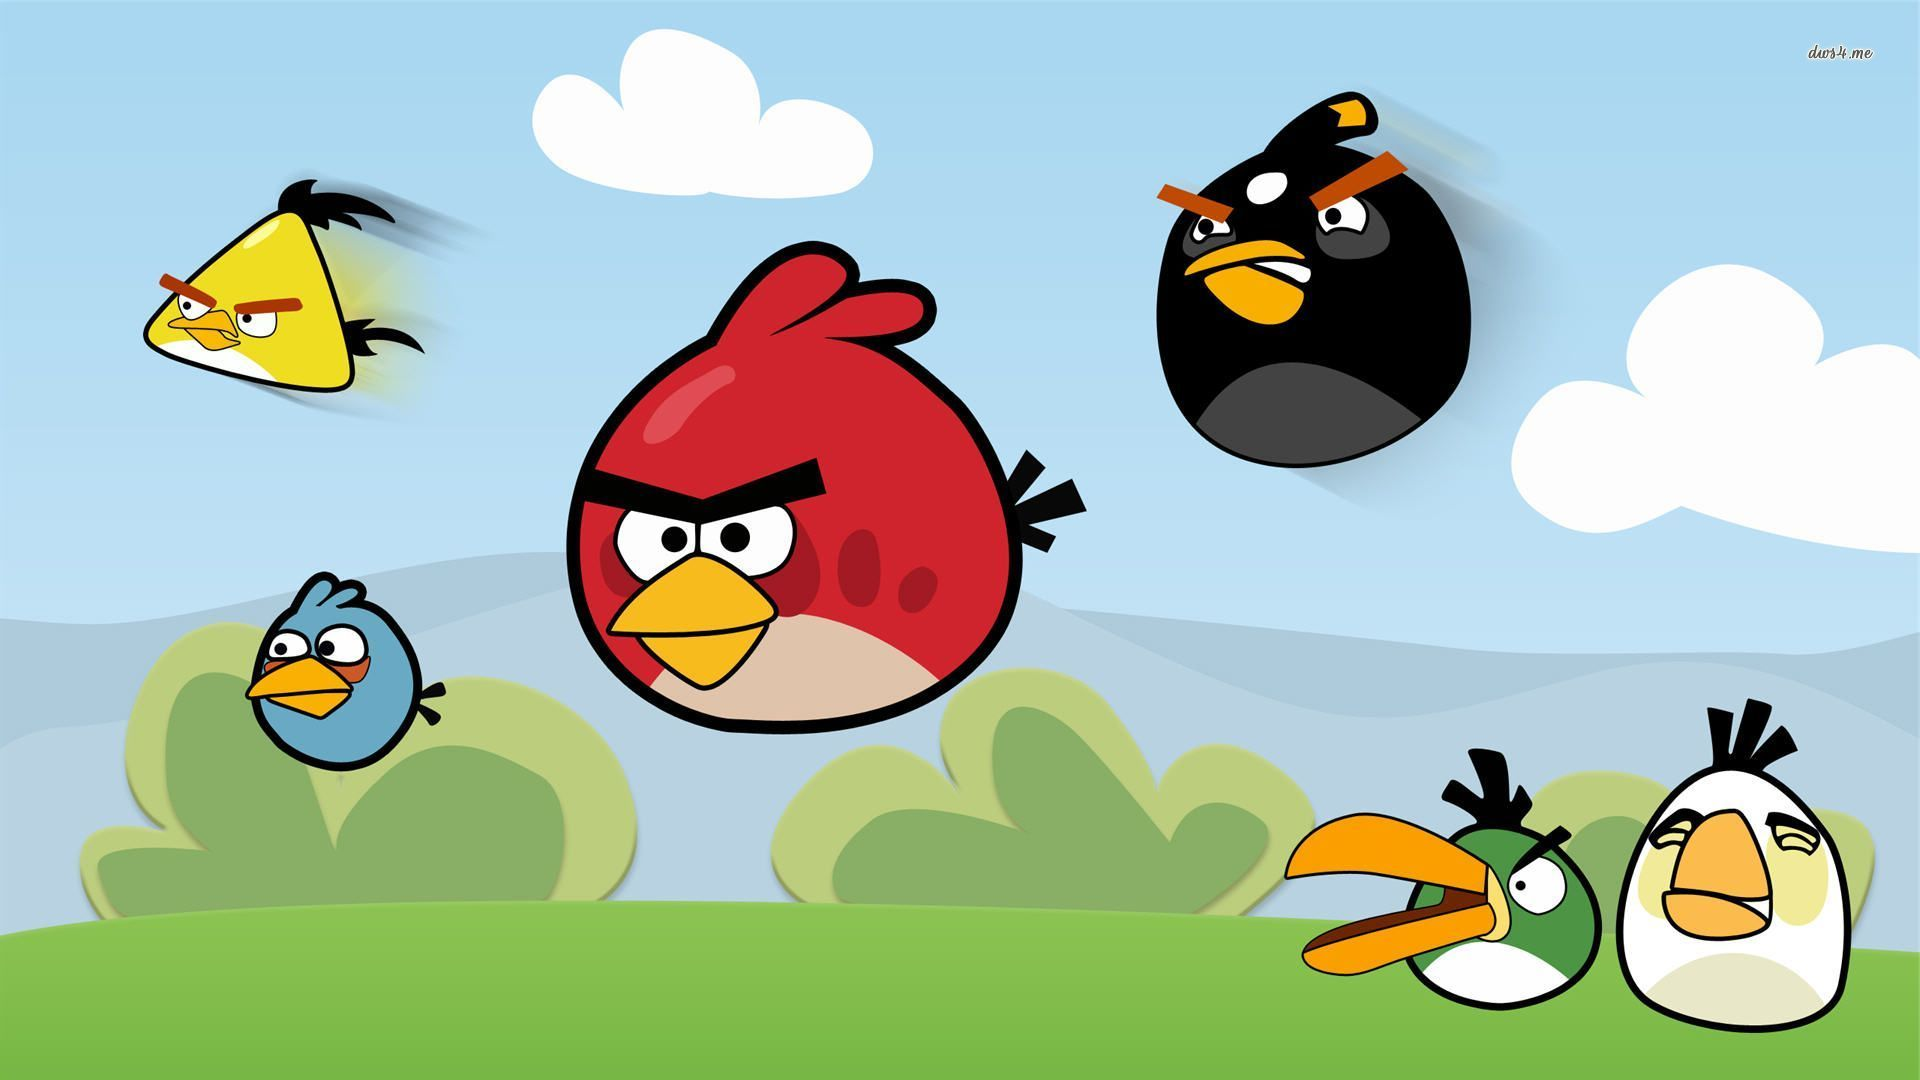 Angry Birds Wallpapers and iPhone Wallpapers   Angry Birds Games 1920x1080